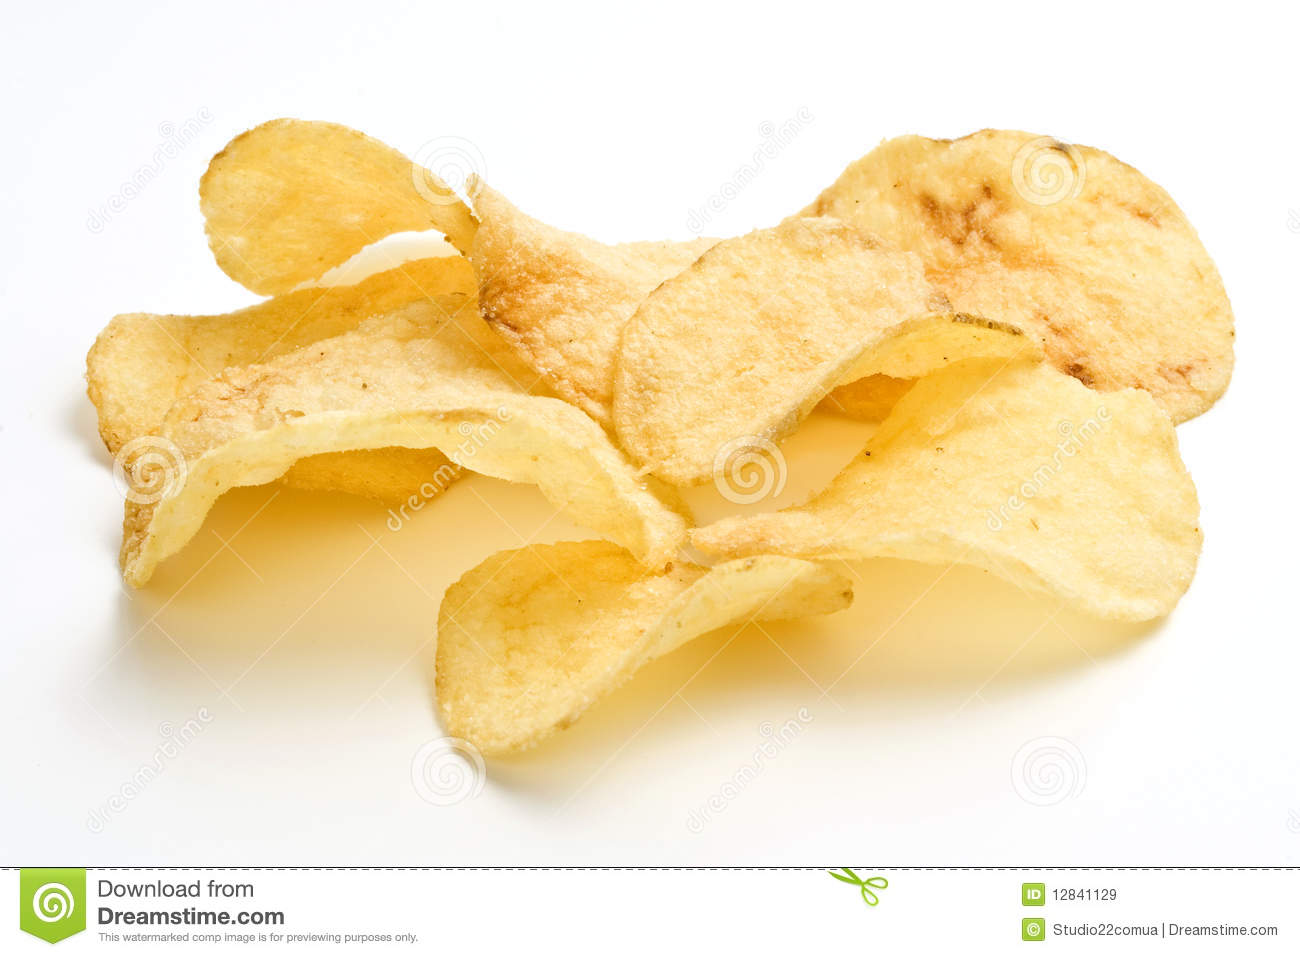 Chips patato